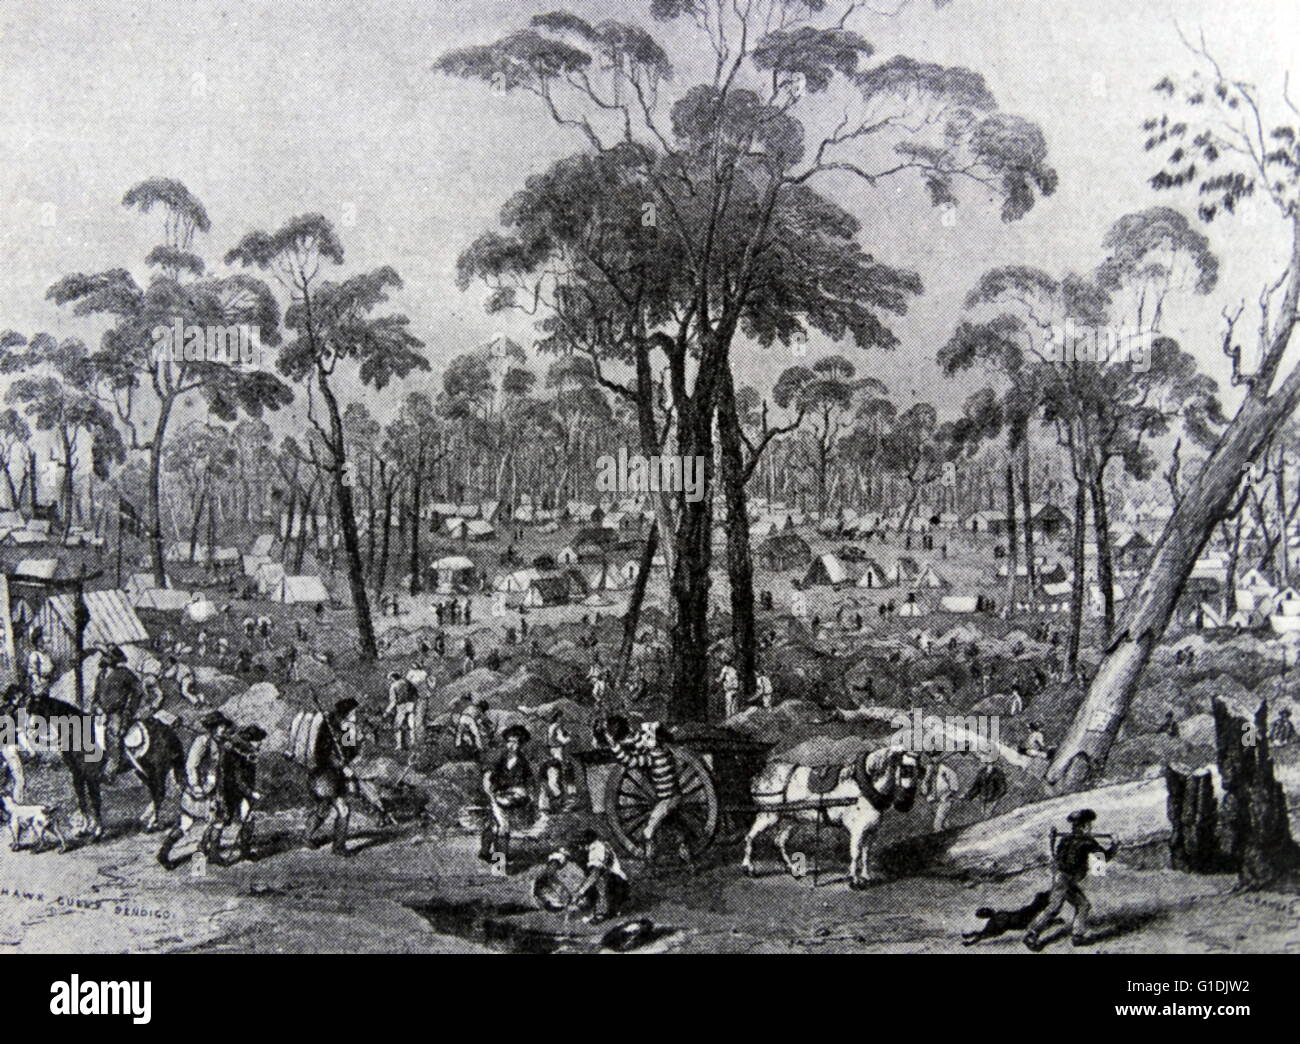 The discovery of gold in the area of Bendigo in the 1850s marked a boom era in the state of Victoria, Australia, - Stock Image